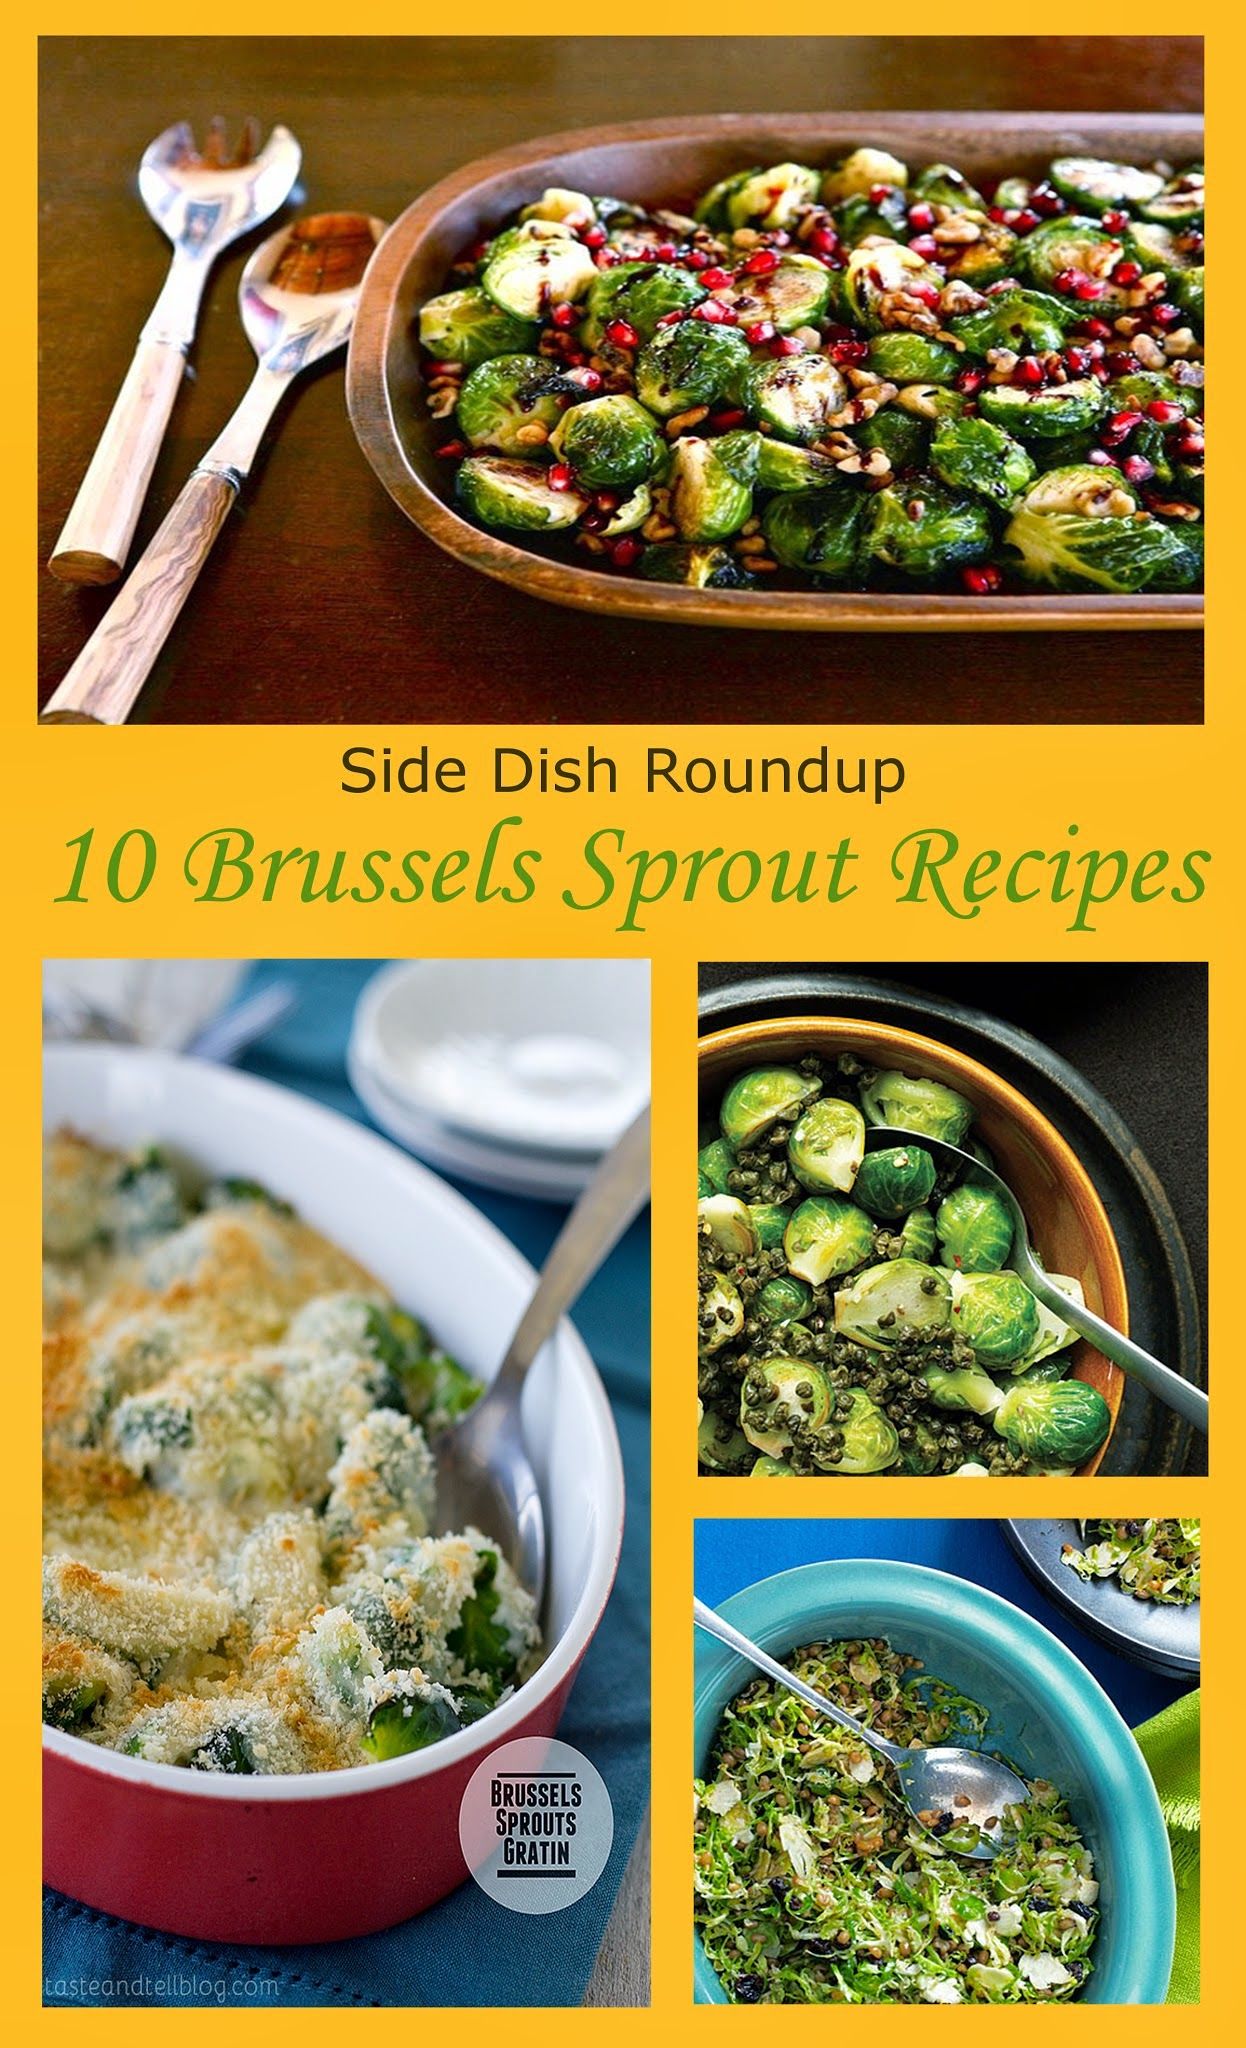 Brussel Sprout Side Dish Recipe